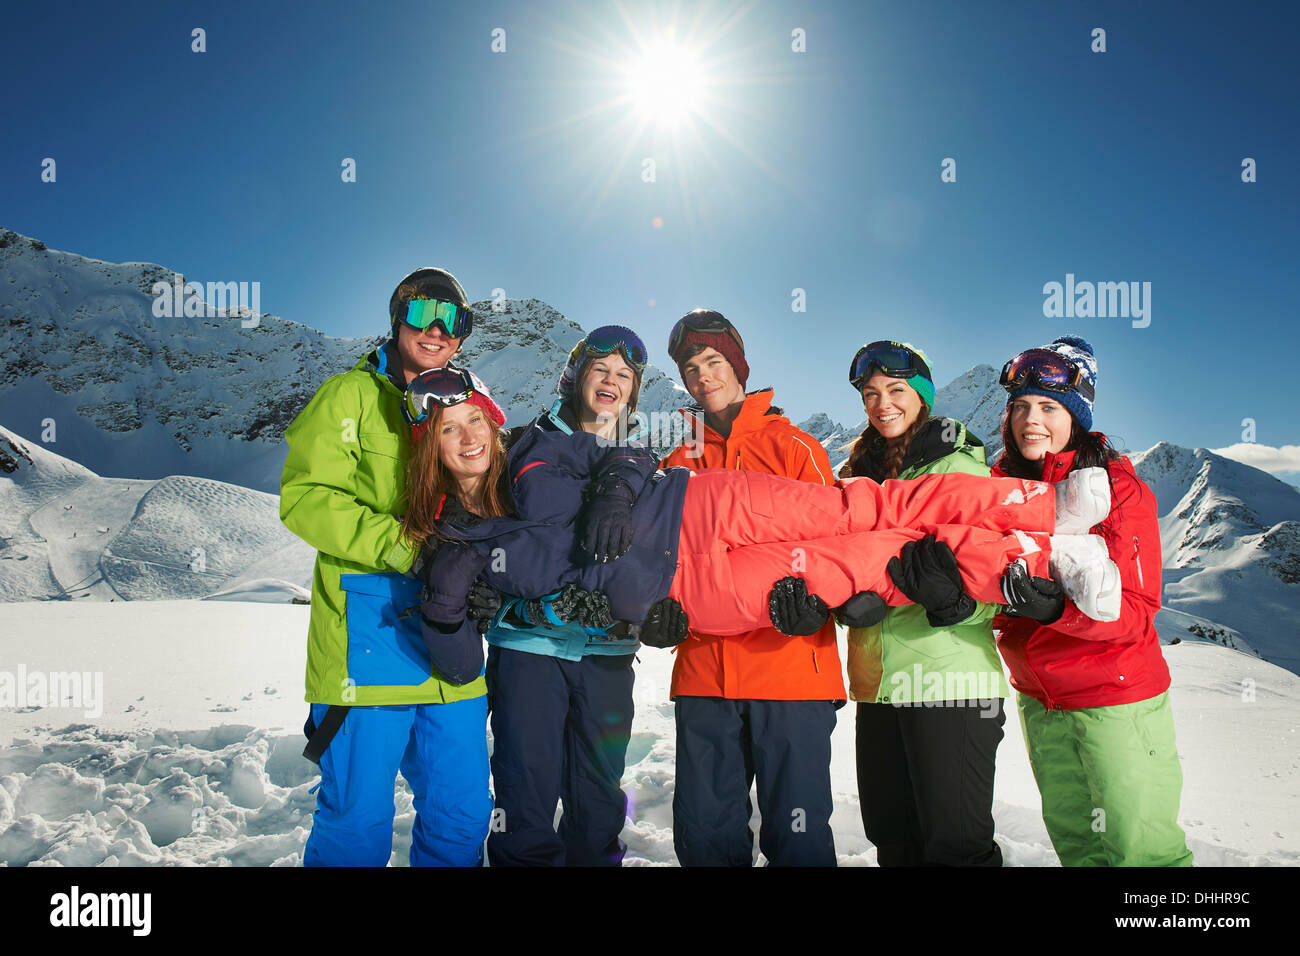 Friends holding woman in snow, Kuhtai, Austria - Stock Image